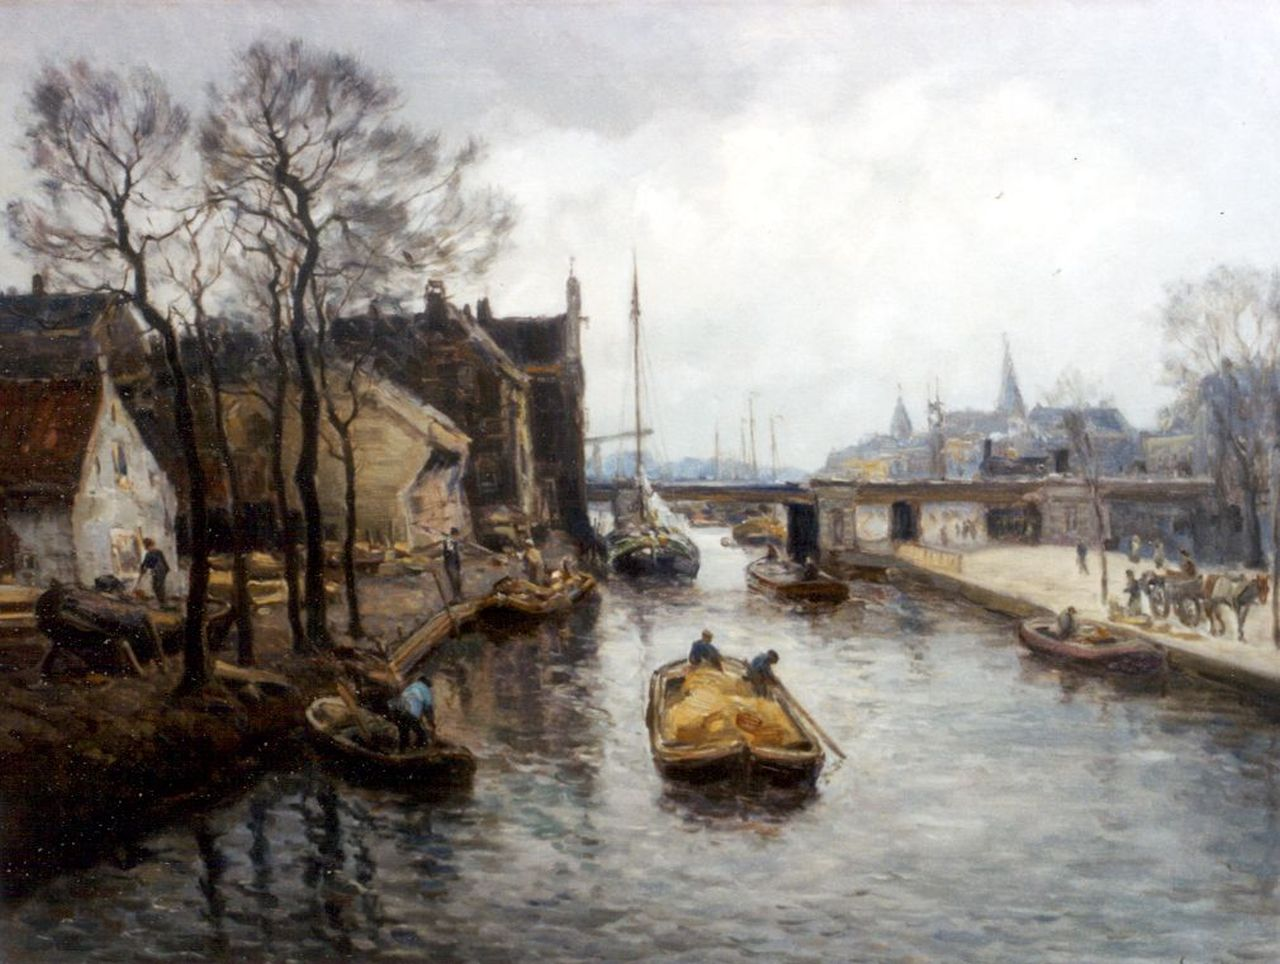 Moll E.  | Evert Moll, The 'Oude Haven', Rotterdam, oil on canvas 60.6 x 80.3 cm, signed l.r.